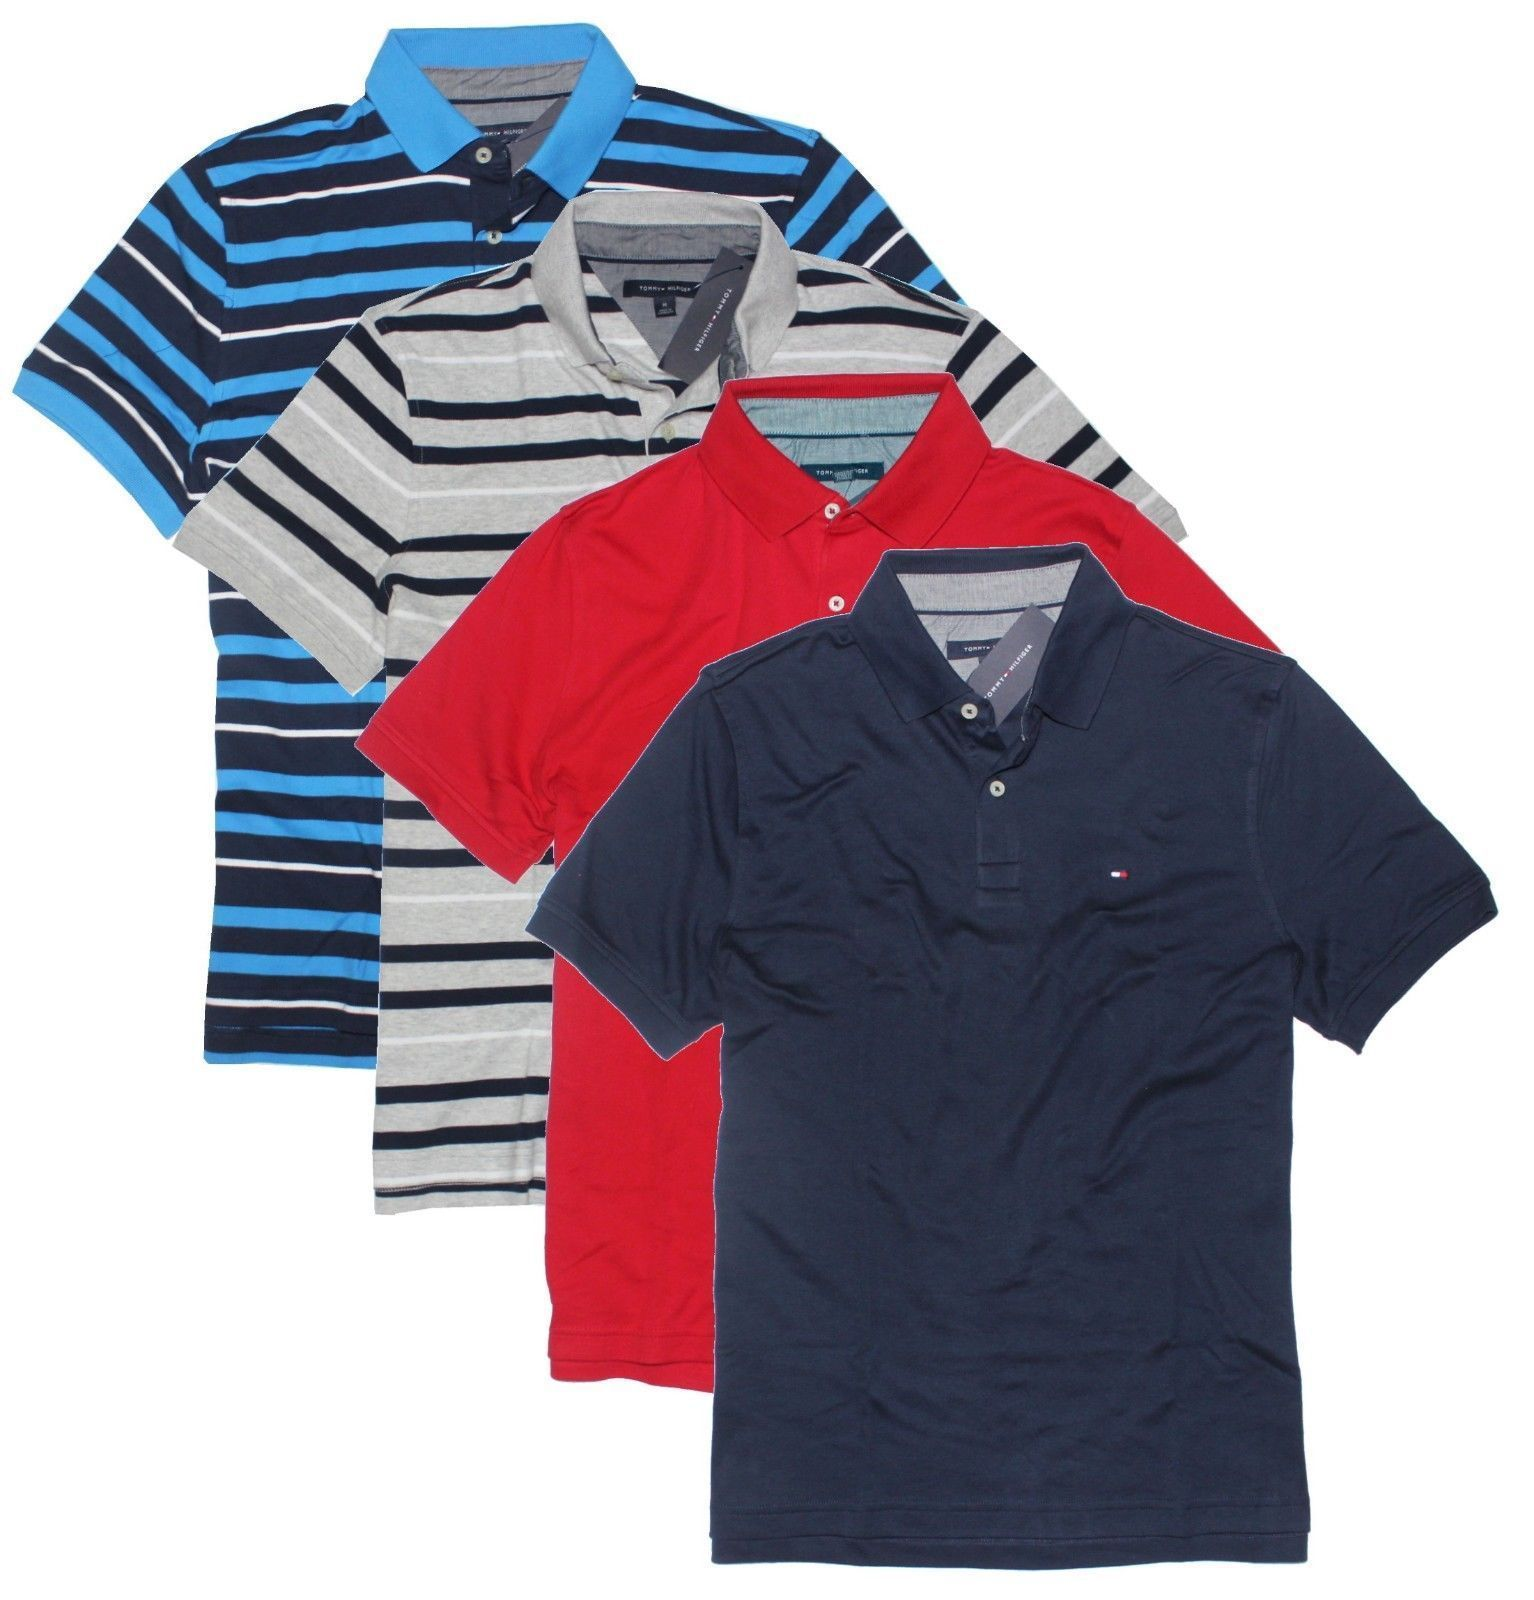 Tommy Hilfiger Men's Classic Short Sleeve Polo Shirt